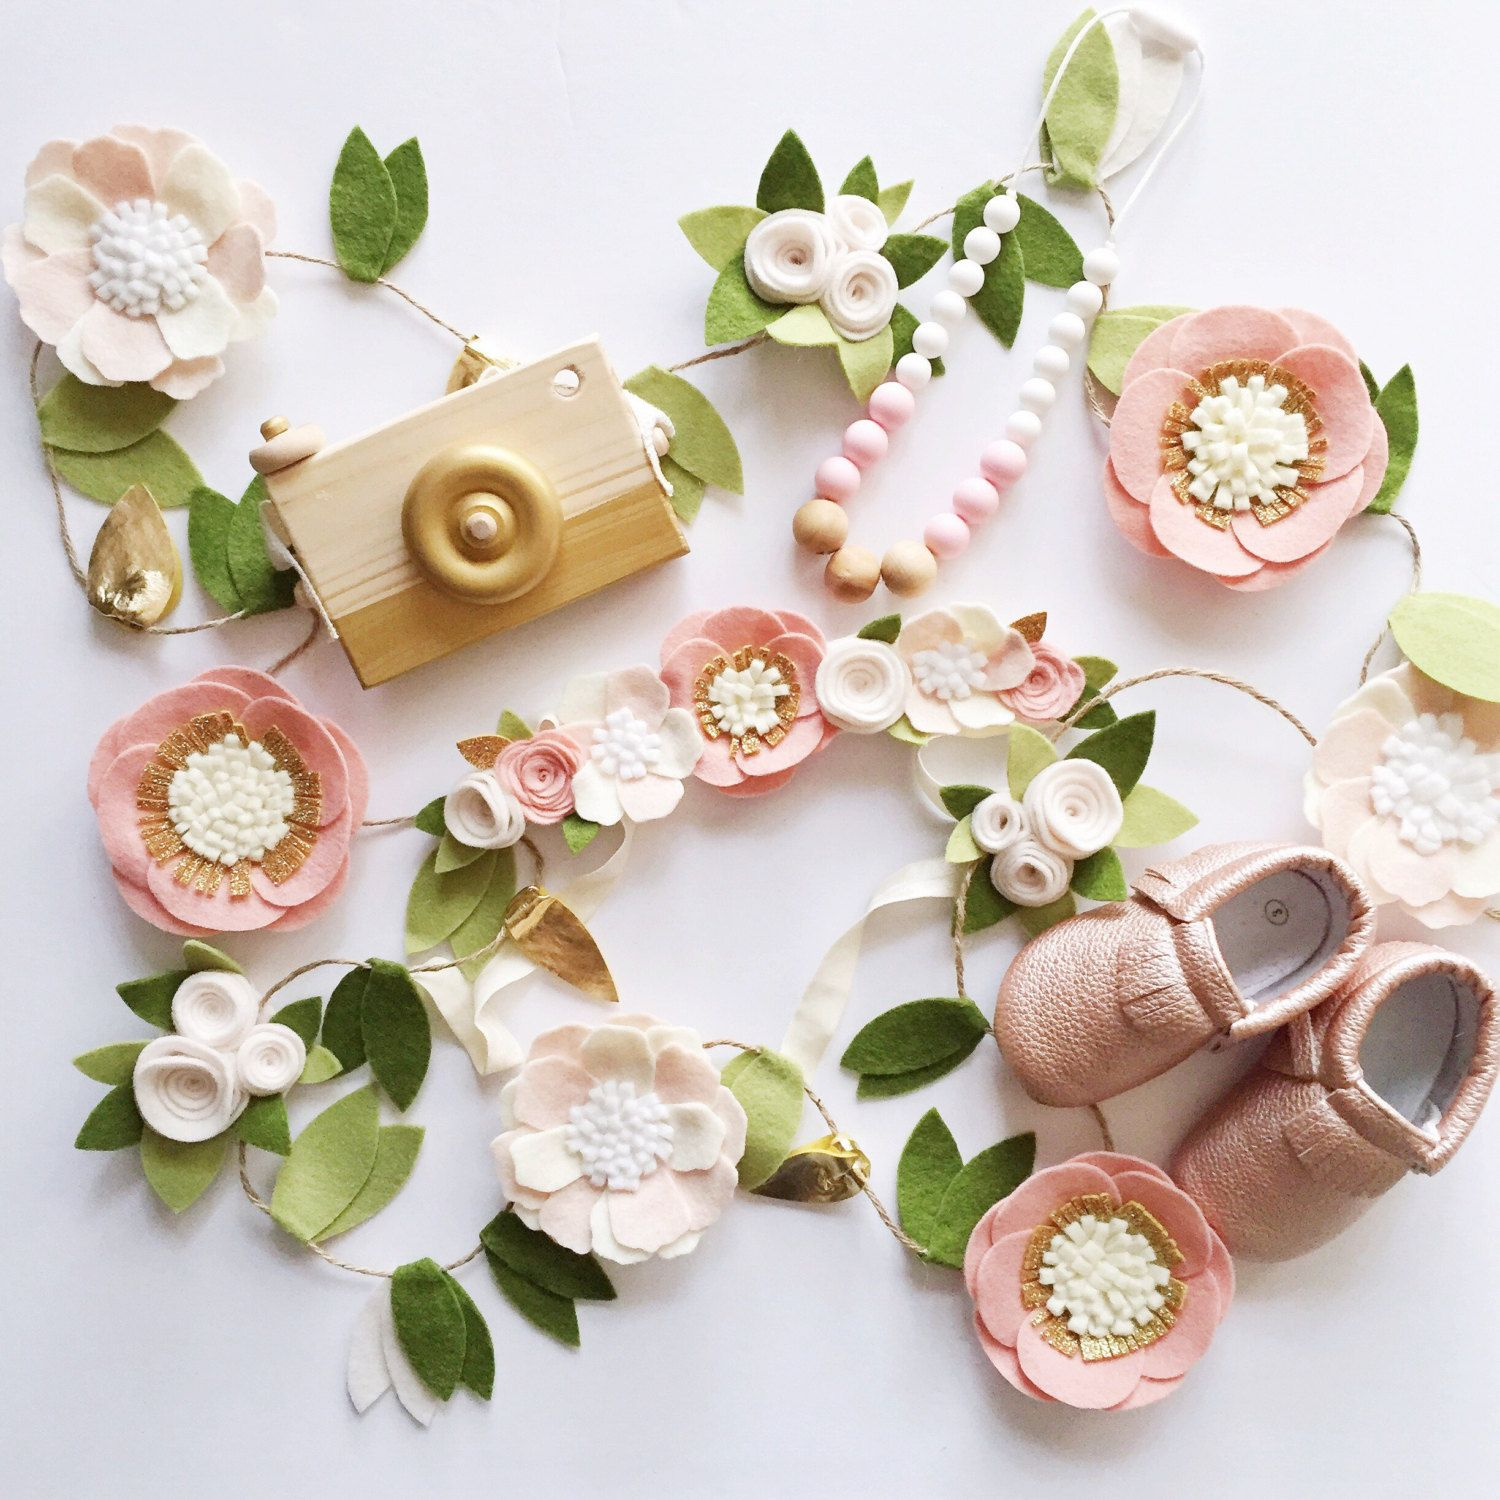 Gorgeous Felt Flower Garland In Blush Pink Gold White Ivory And Other Neutrals With Green And Gold Leaves Felt Flower Garland Felt Flowers Flower Garlands